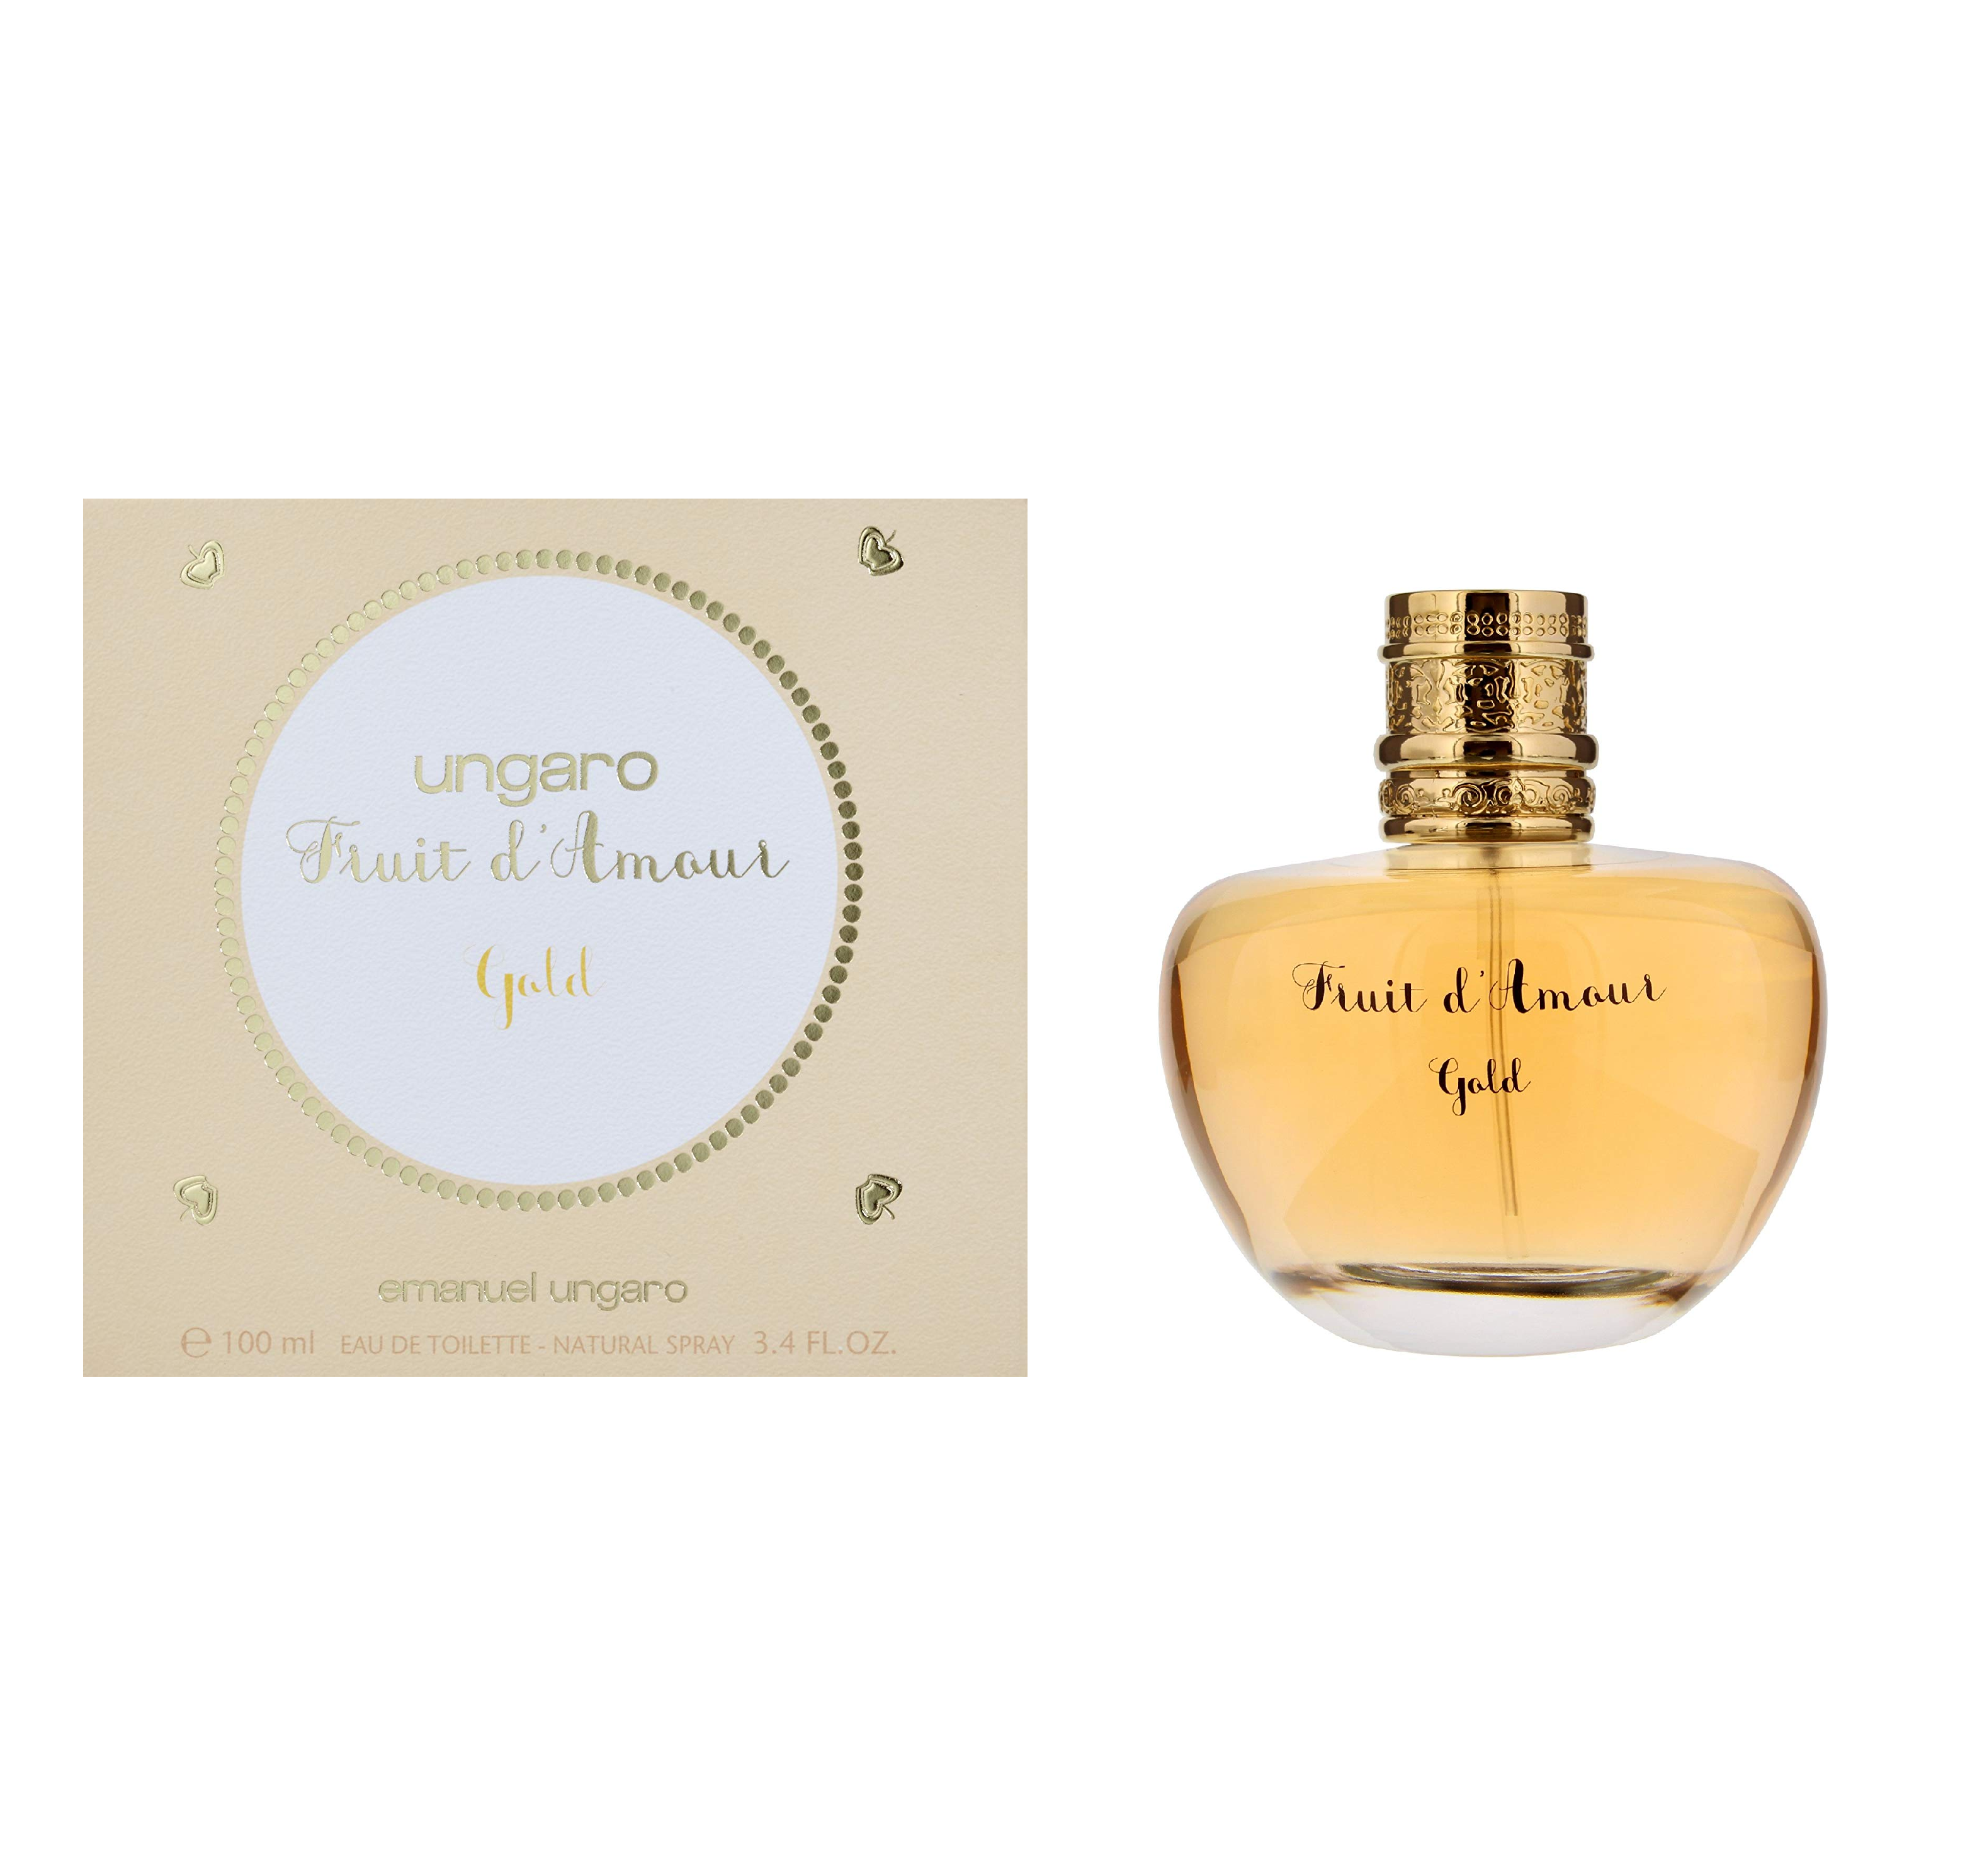 UNGARO FRUIT D'AMOUR GOLD 3.4 EDT SP